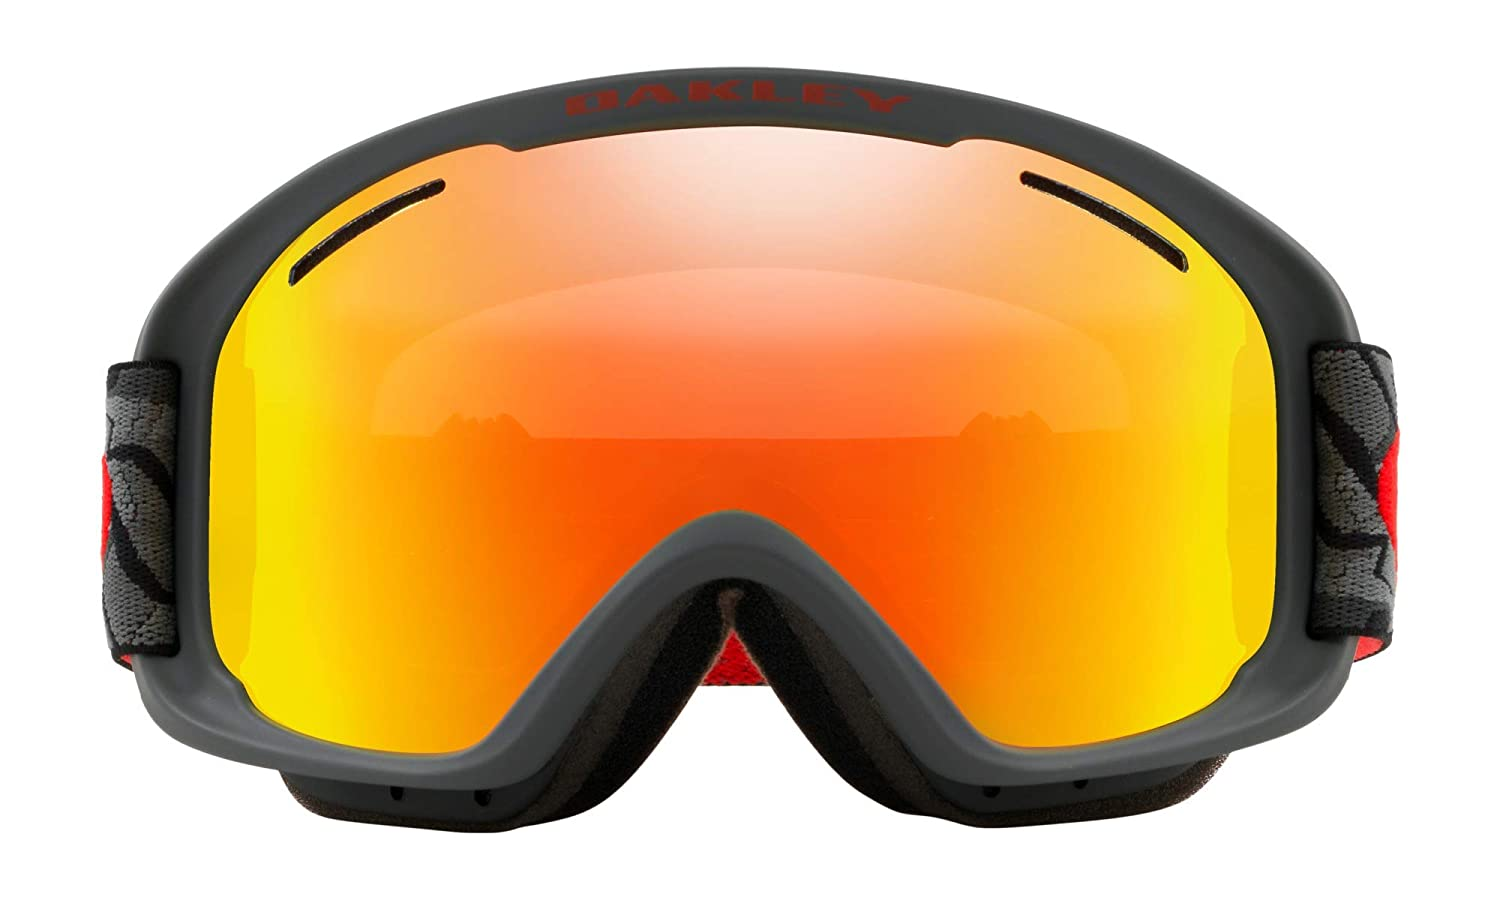 59b42aa19b Amazon.com   Oakley O Frame XM 2.0 Snow Goggles Camo Vine Night with Fire  Iridium and Persimmon Lens   Sports   Outdoors